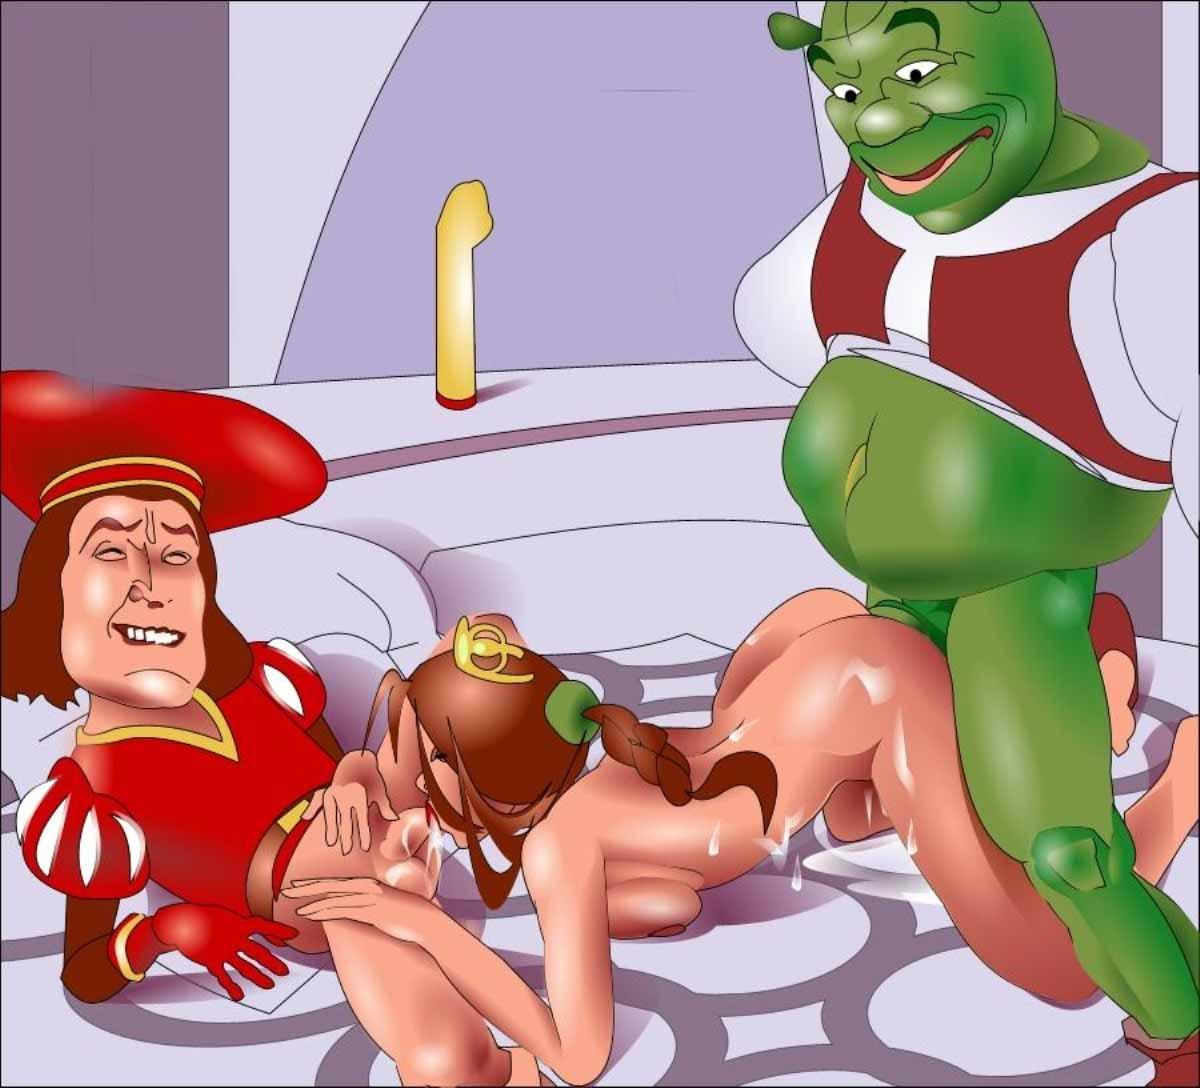 Shrek fuck pictures naked gallery